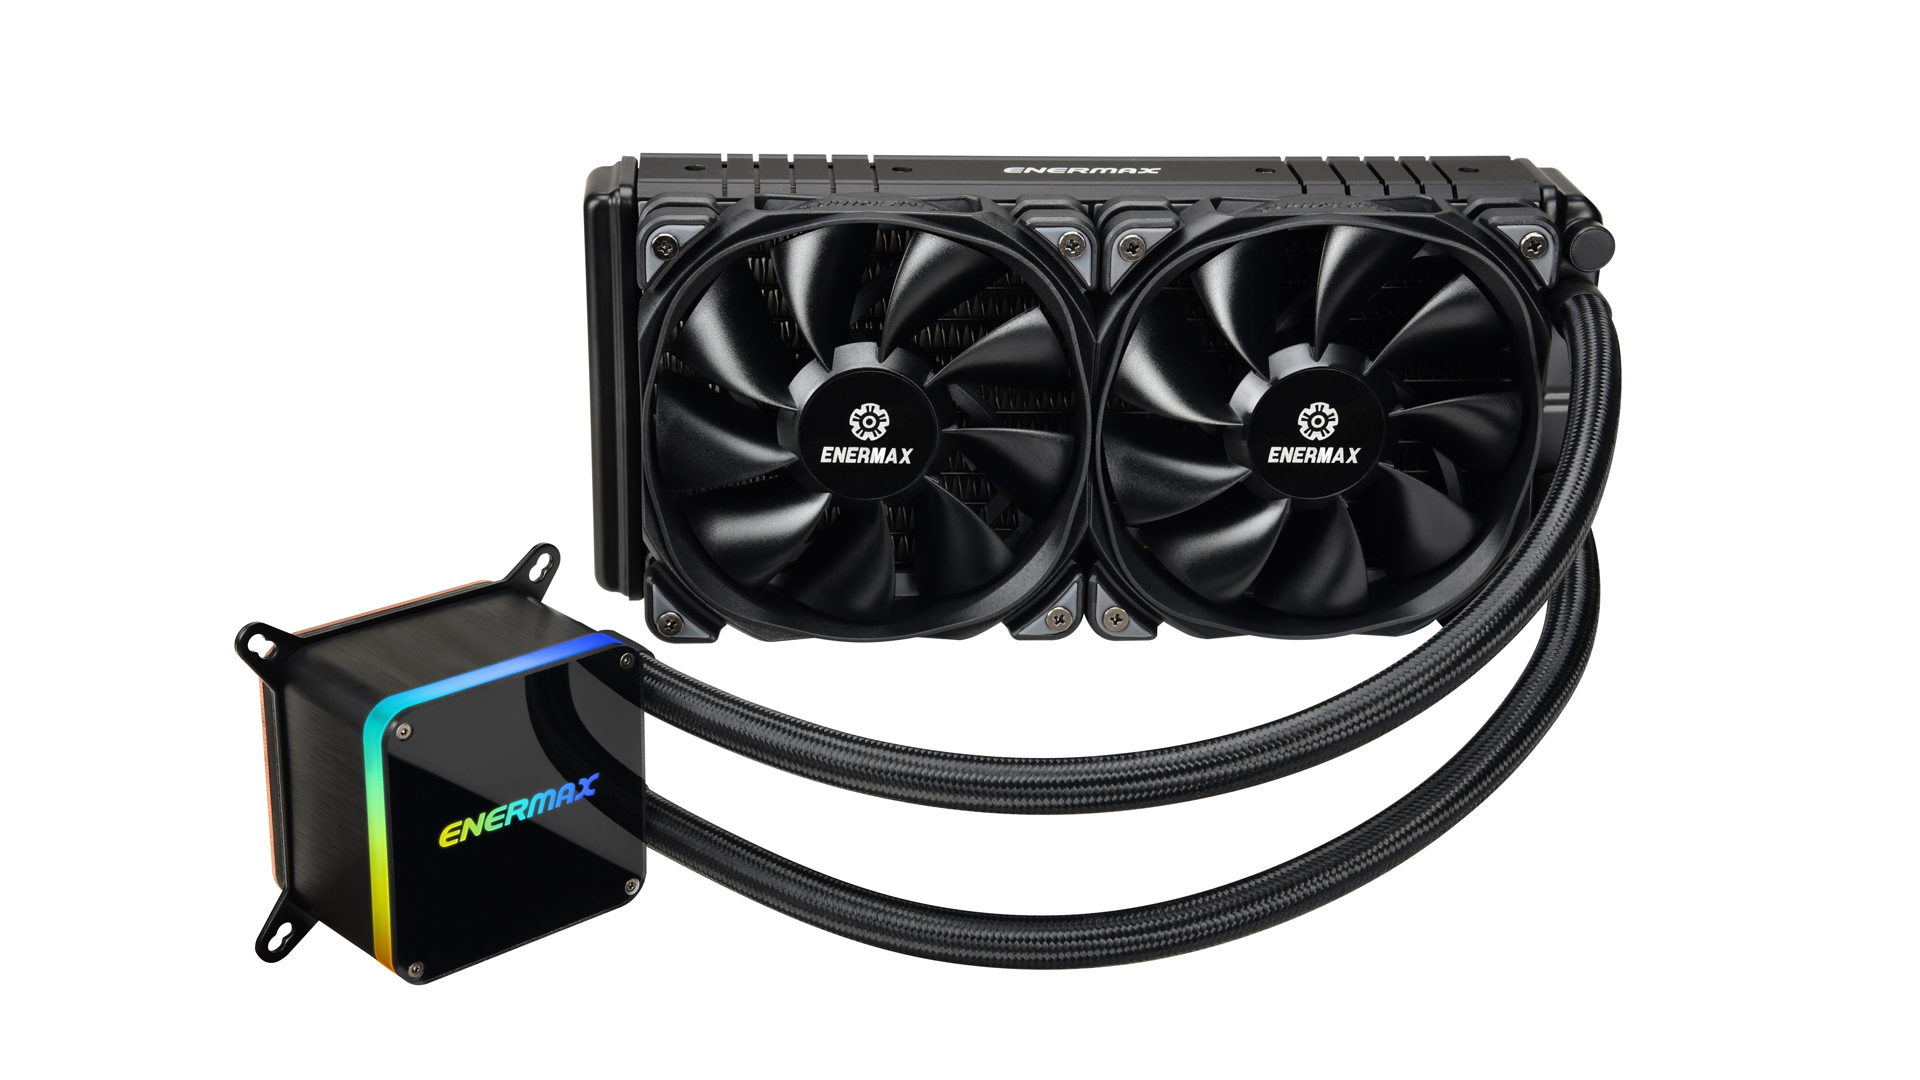 Liqtech Il 280 Liquid Cooler